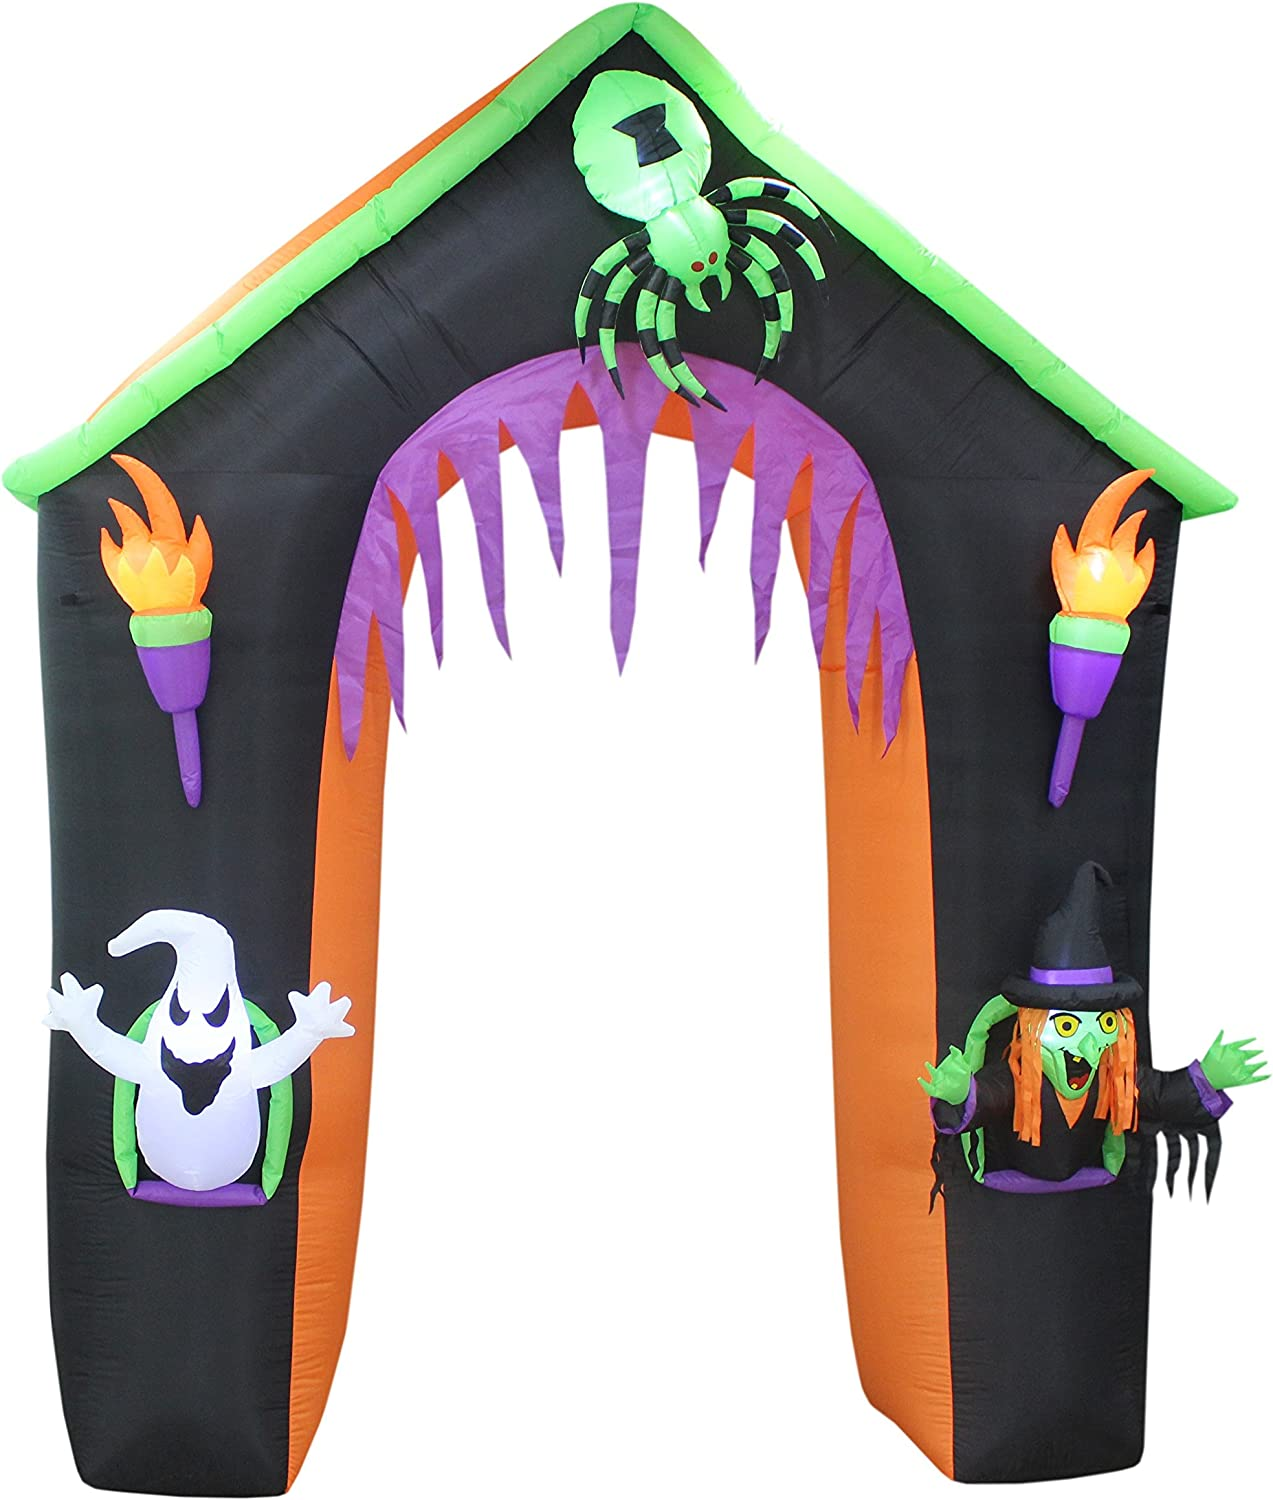 Amazon.com: BZB Goods - Castillo hinchable de Halloween con ...